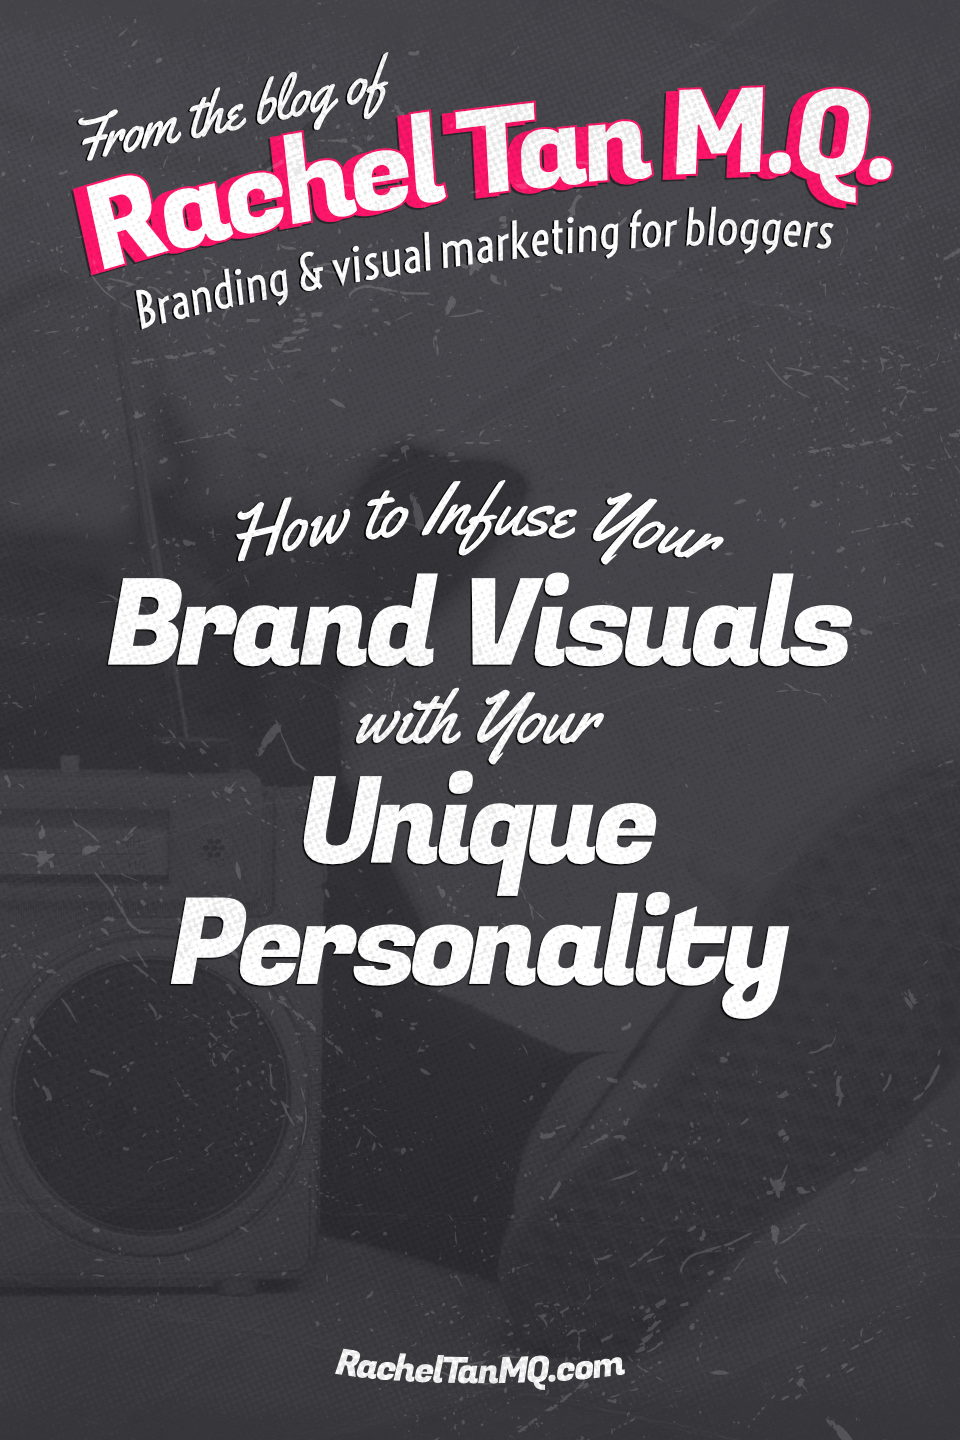 Do you want your blog/brand to ooze with your personality, but have no idea where to start? Learn how to DIY a visual brand that's truly one-of-a-kind and accurately reflects who you are in this blog post! • personal brand | brand personality | visual branding tips | brand design tips | brand design tutorials #personalbranding #branddesign #visualbranding #brandingtips #graphicdesigntips